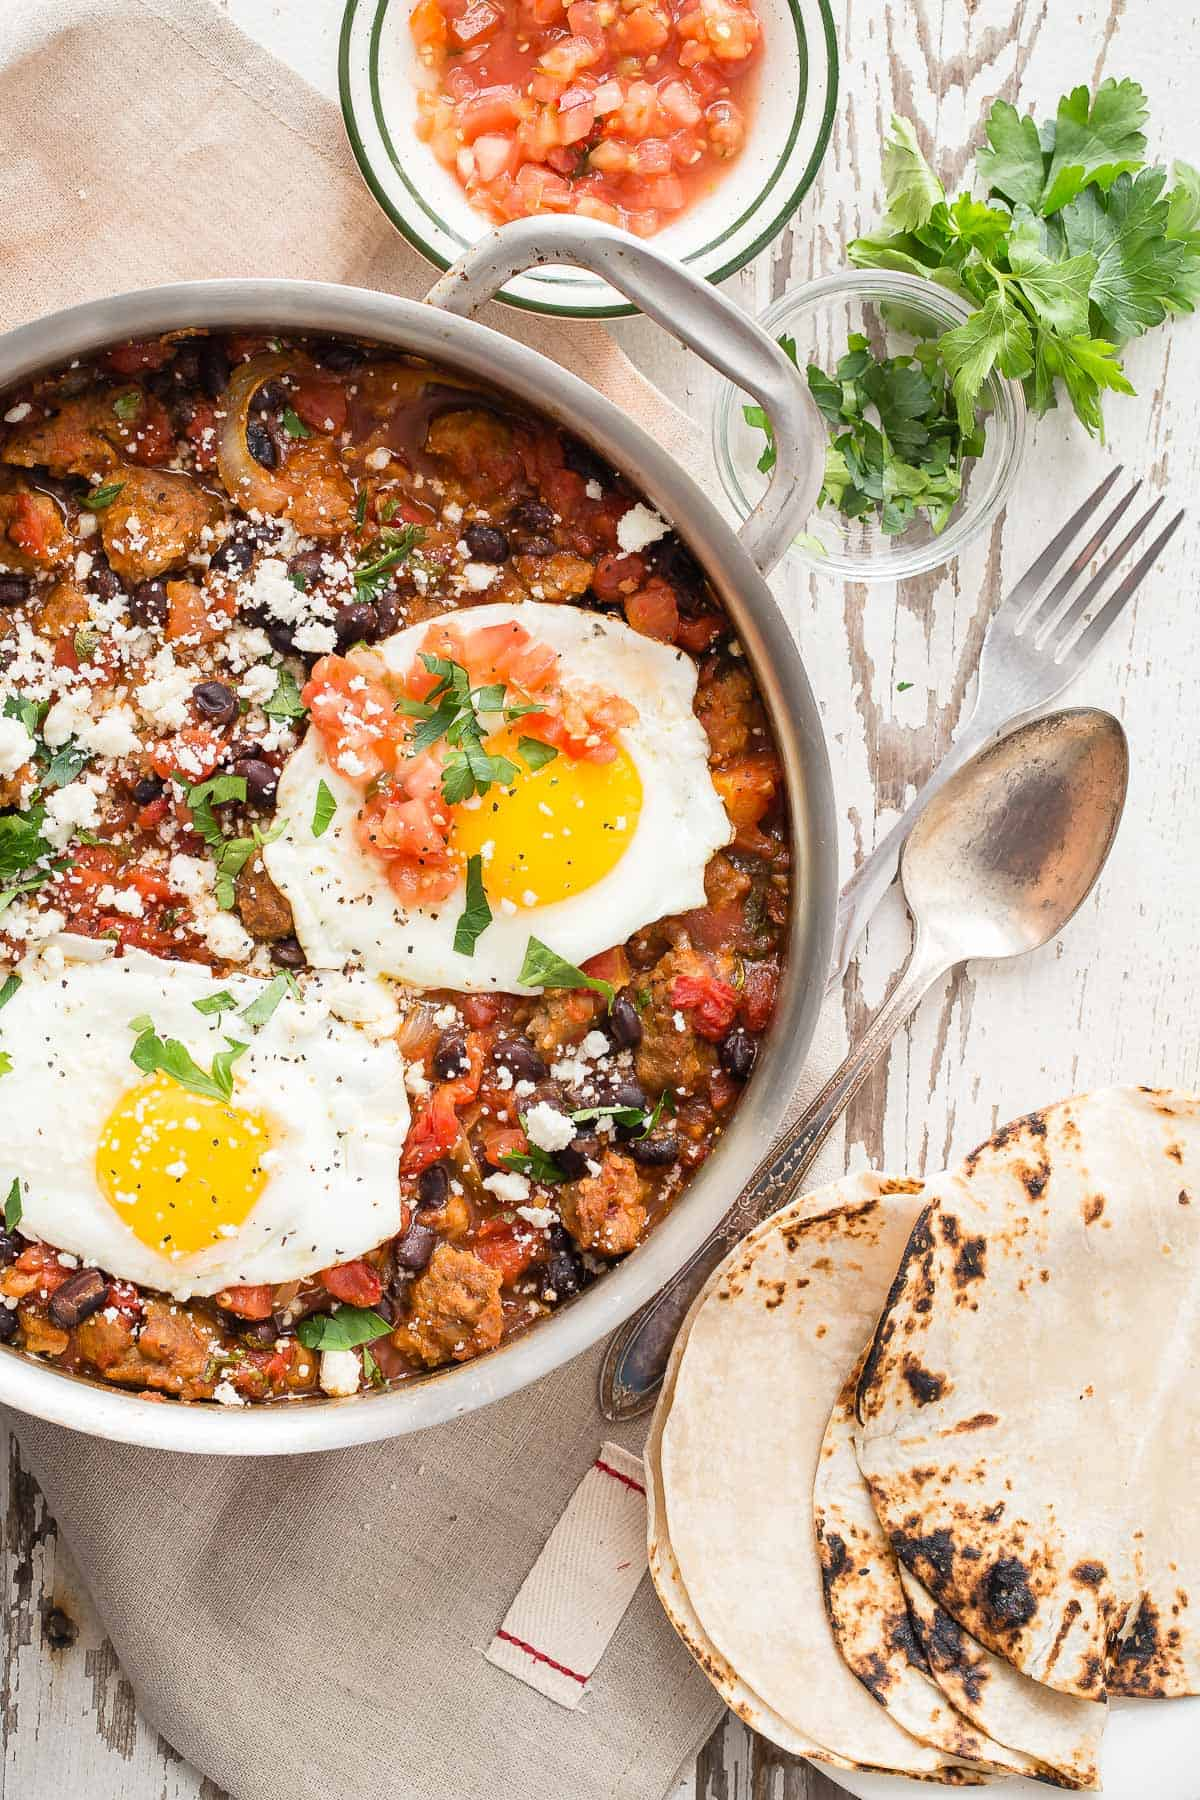 A tasty breakfast skillet full of Lightlife meatless sausage, tomatoes and seasoning. Top with an egg for a great way to start the day.